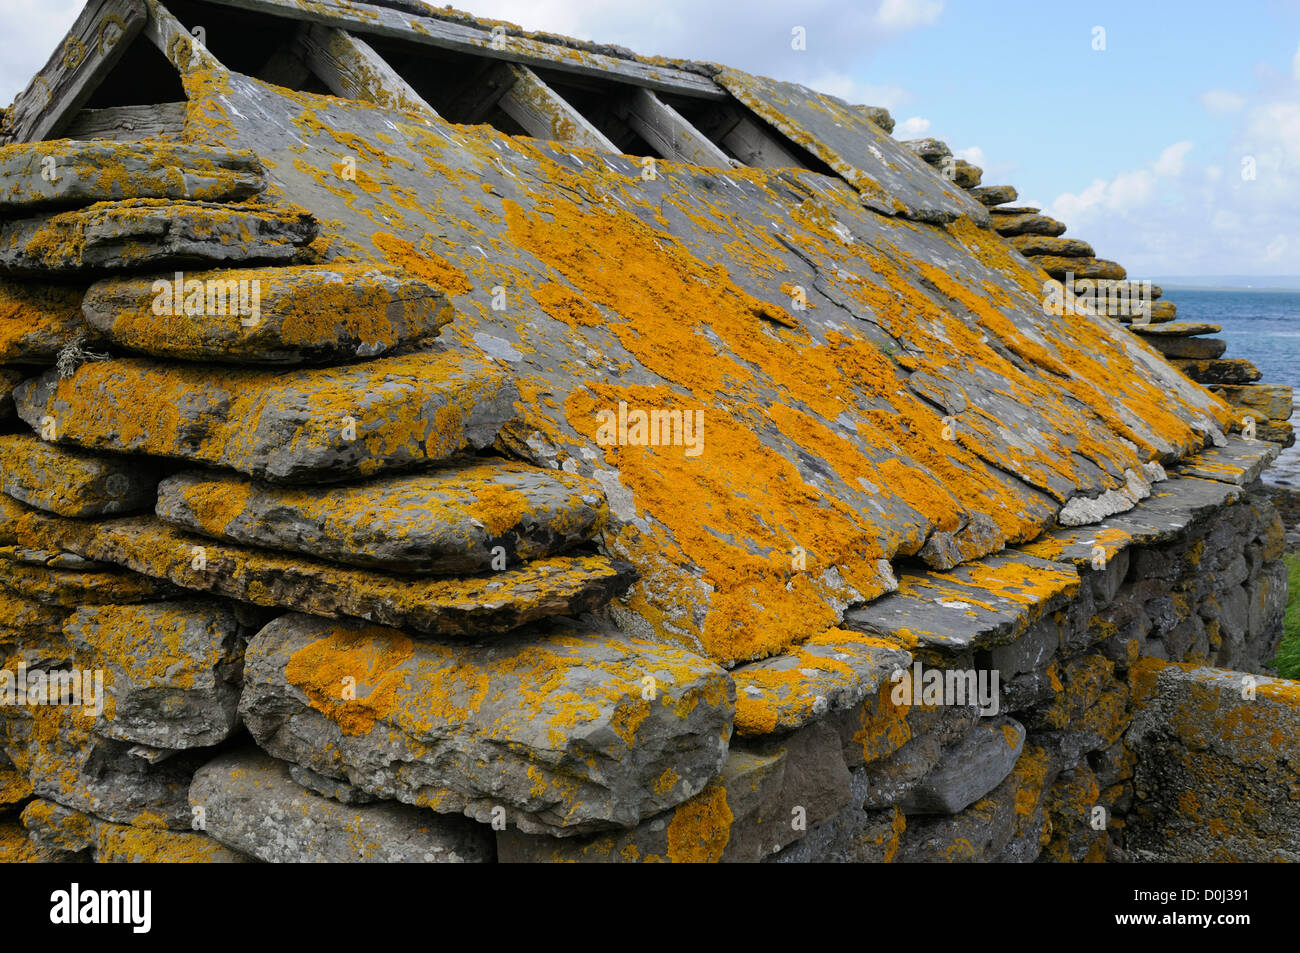 Orange Roof Tiles Stock Photos Amp Orange Roof Tiles Stock